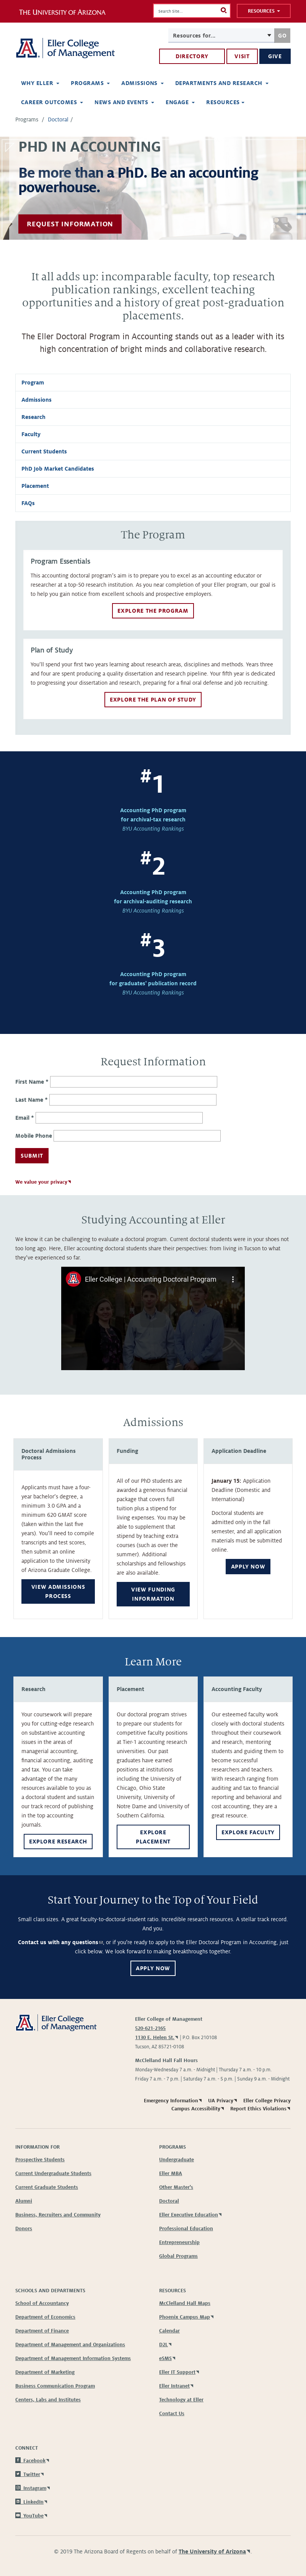 University of Arizona The Eller College of Management PhD in Management - Accounting